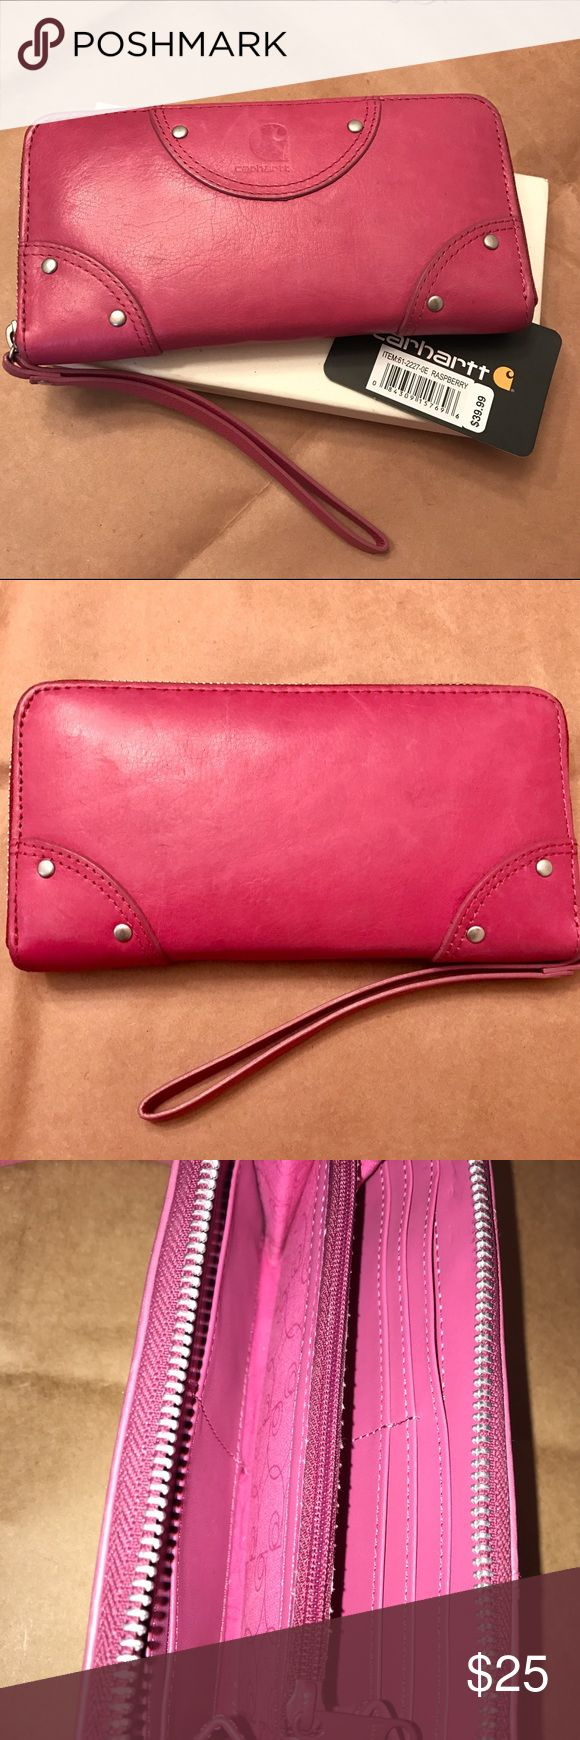 """Carhartt Womens Zippered Clutch - Raspberry Full Grain Napa leather - Eight credit card pockets - Two billfolds with zippered change pocket - Room for checkbook inside zippered outer closure - Wrist strap - Heat stamped Carhart logo on front - Printed fabric lining - 4 1/4 """" x 7 3/4"""". 🔹Carried for about 2 months. Slight marks on exterior - hard to see (pics)  - Full Grain Napa leather - Eight credit card pockets - Two billfolds with zippered change pocket - Silver finished nail heads…"""